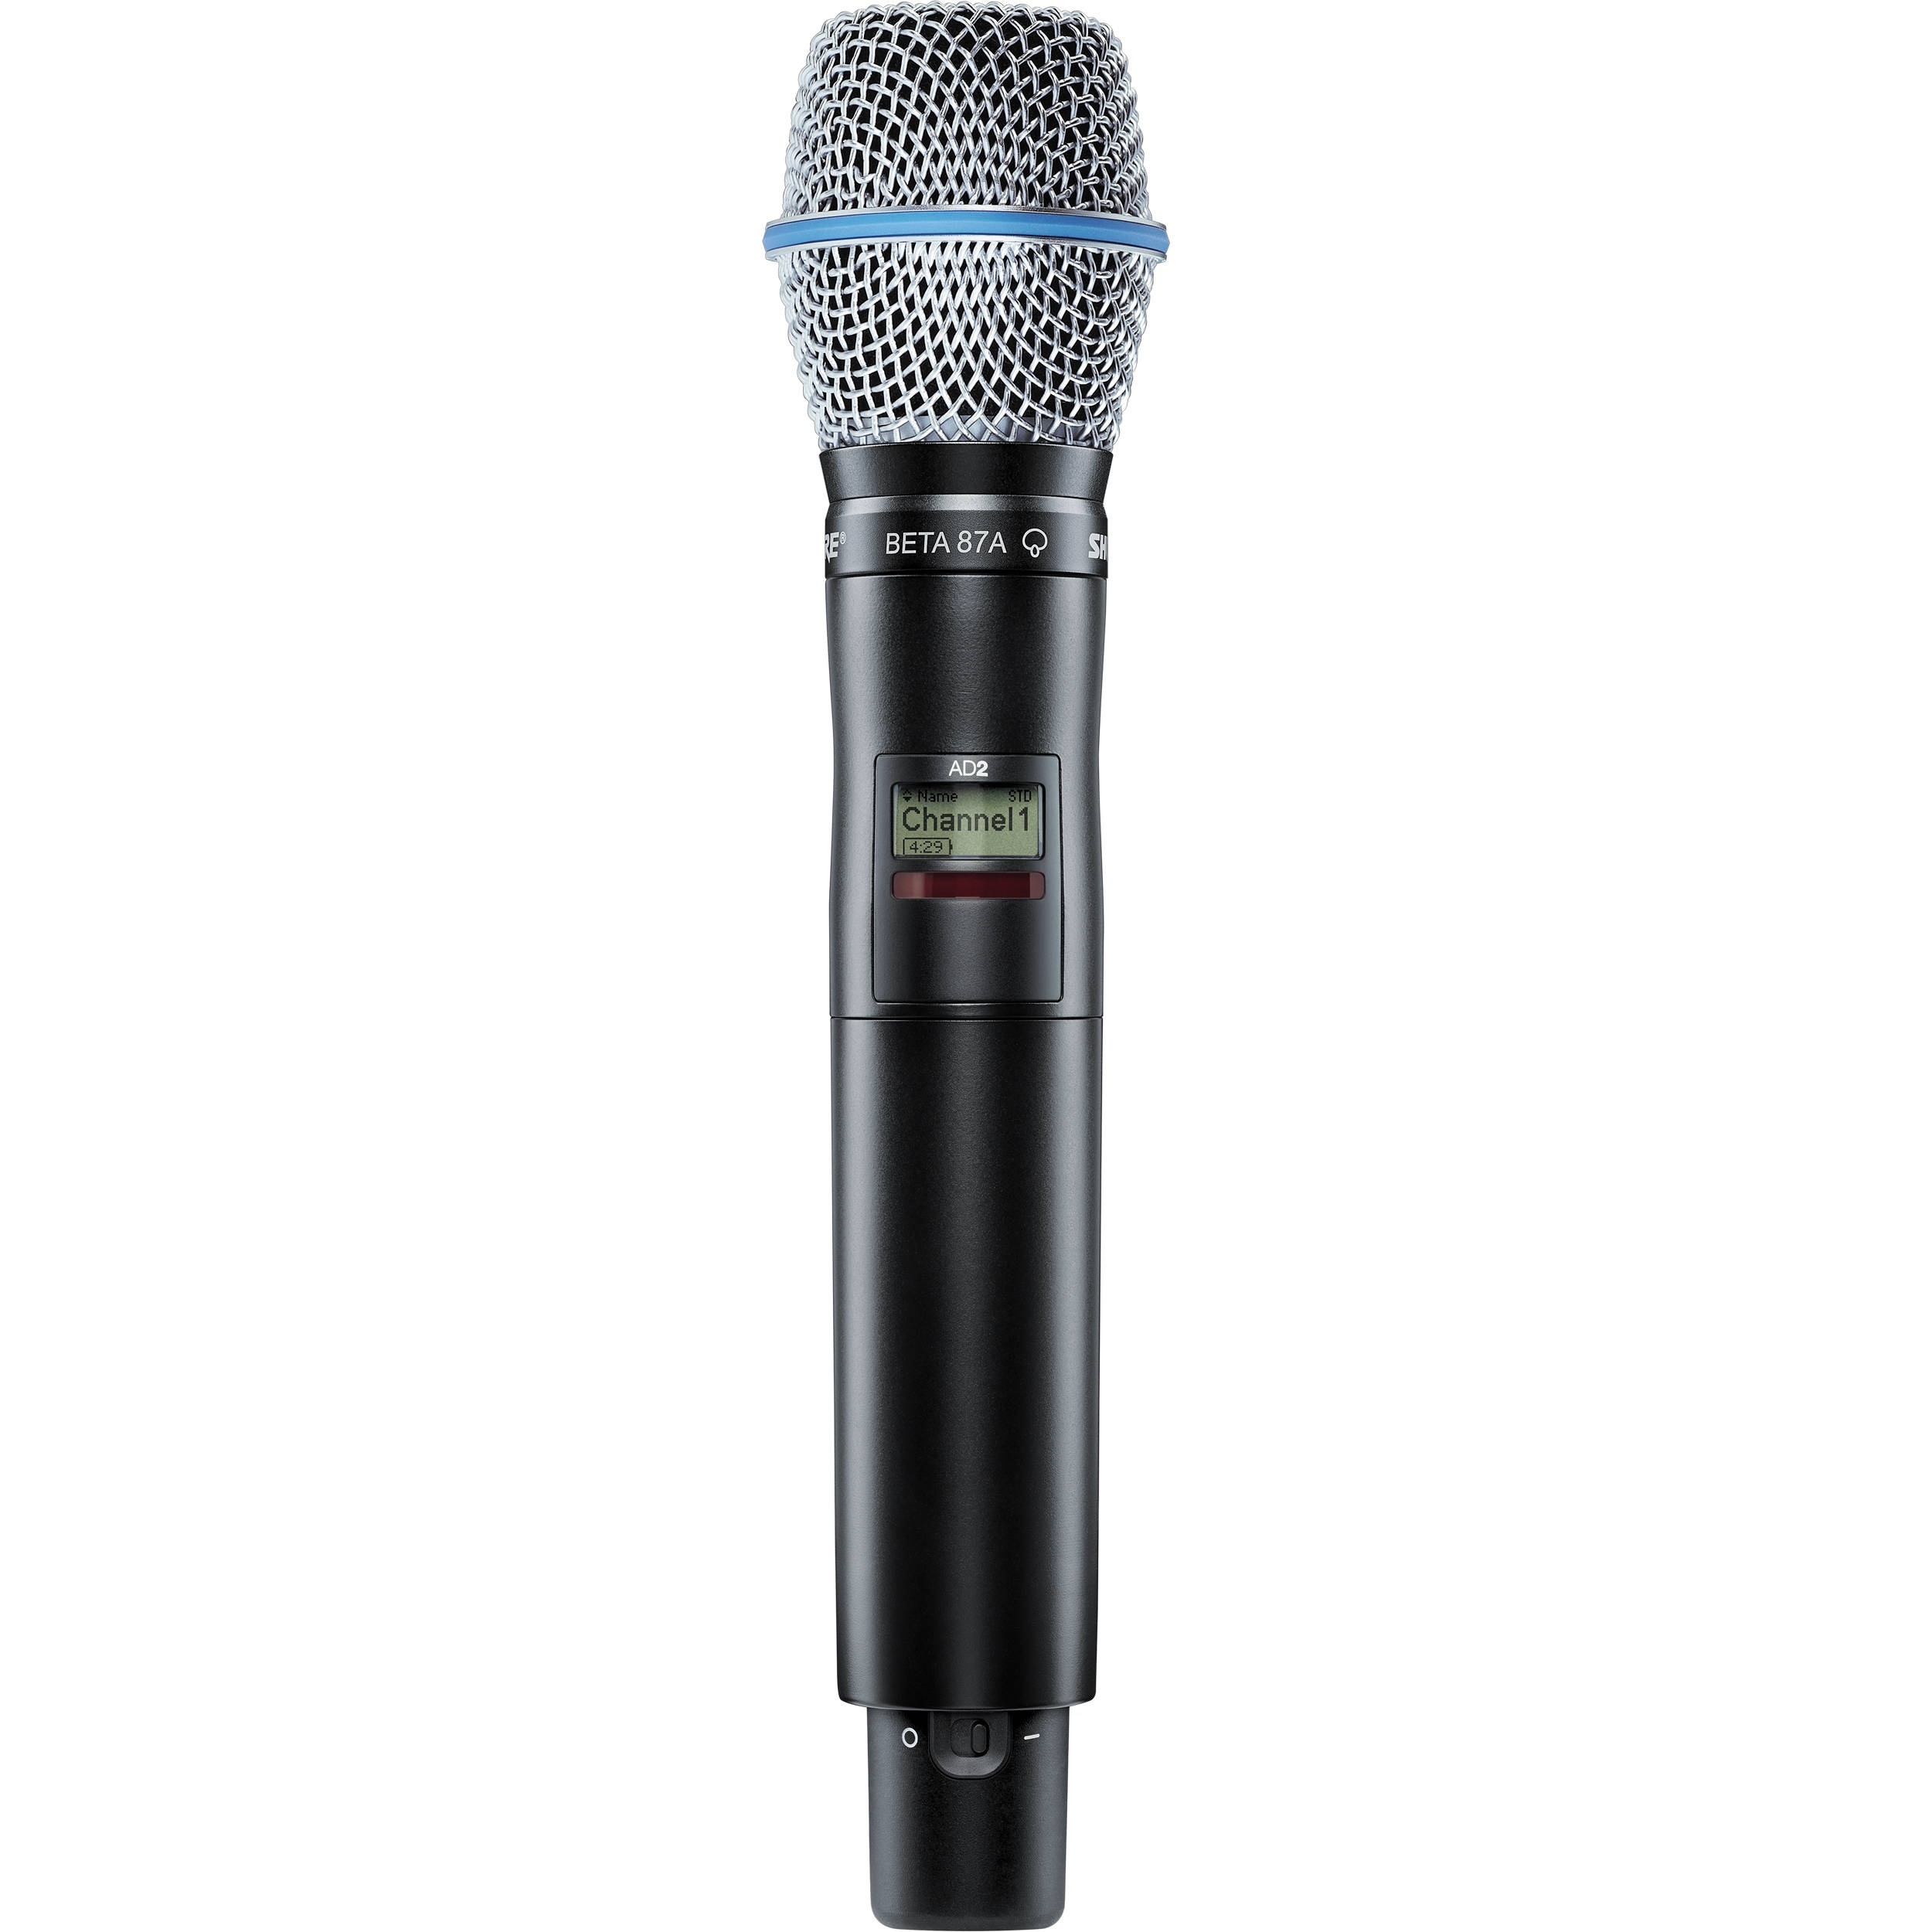 Shure AD2/B87A Digital Handheld Wireless Microphone Transmitter with Beta 87A Capsule